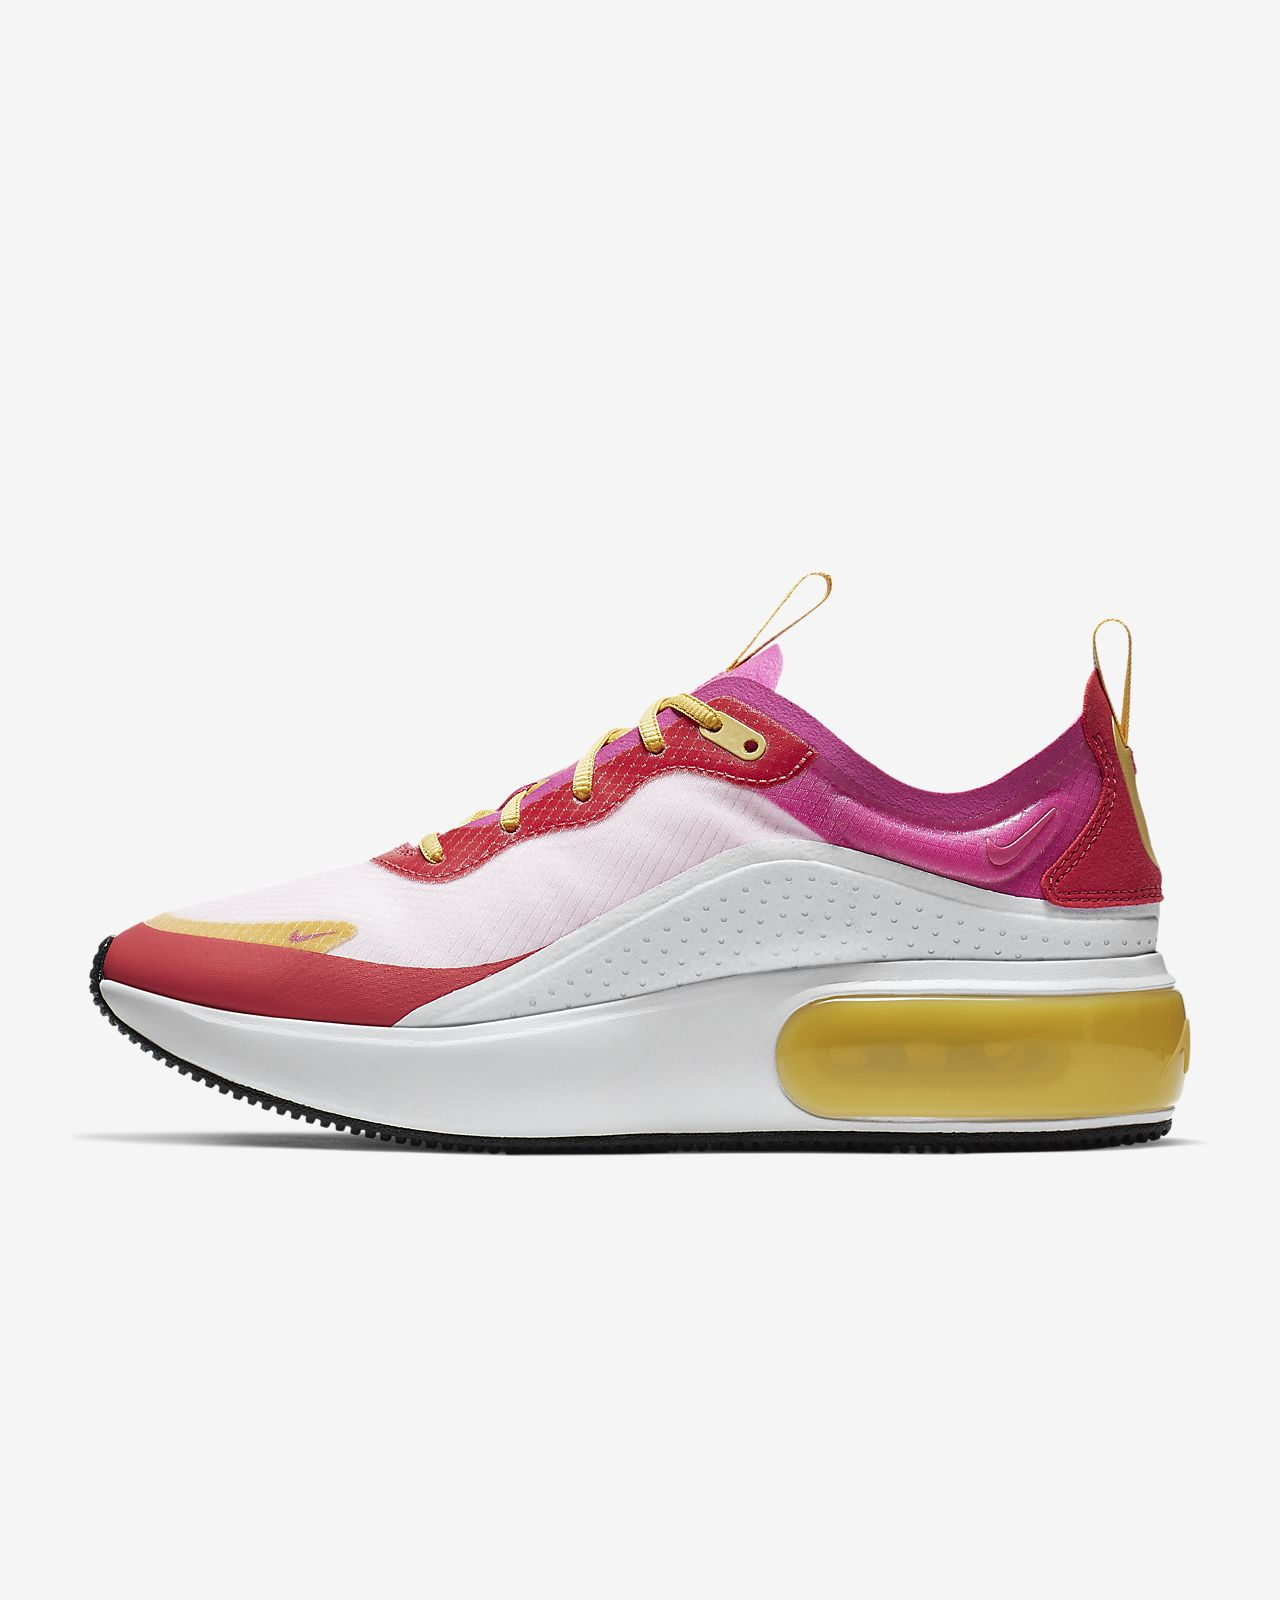 size 40 d2764 3dc8c Low Resolution Sko Nike Air Max Dia SE Sko Nike Air Max Dia SE